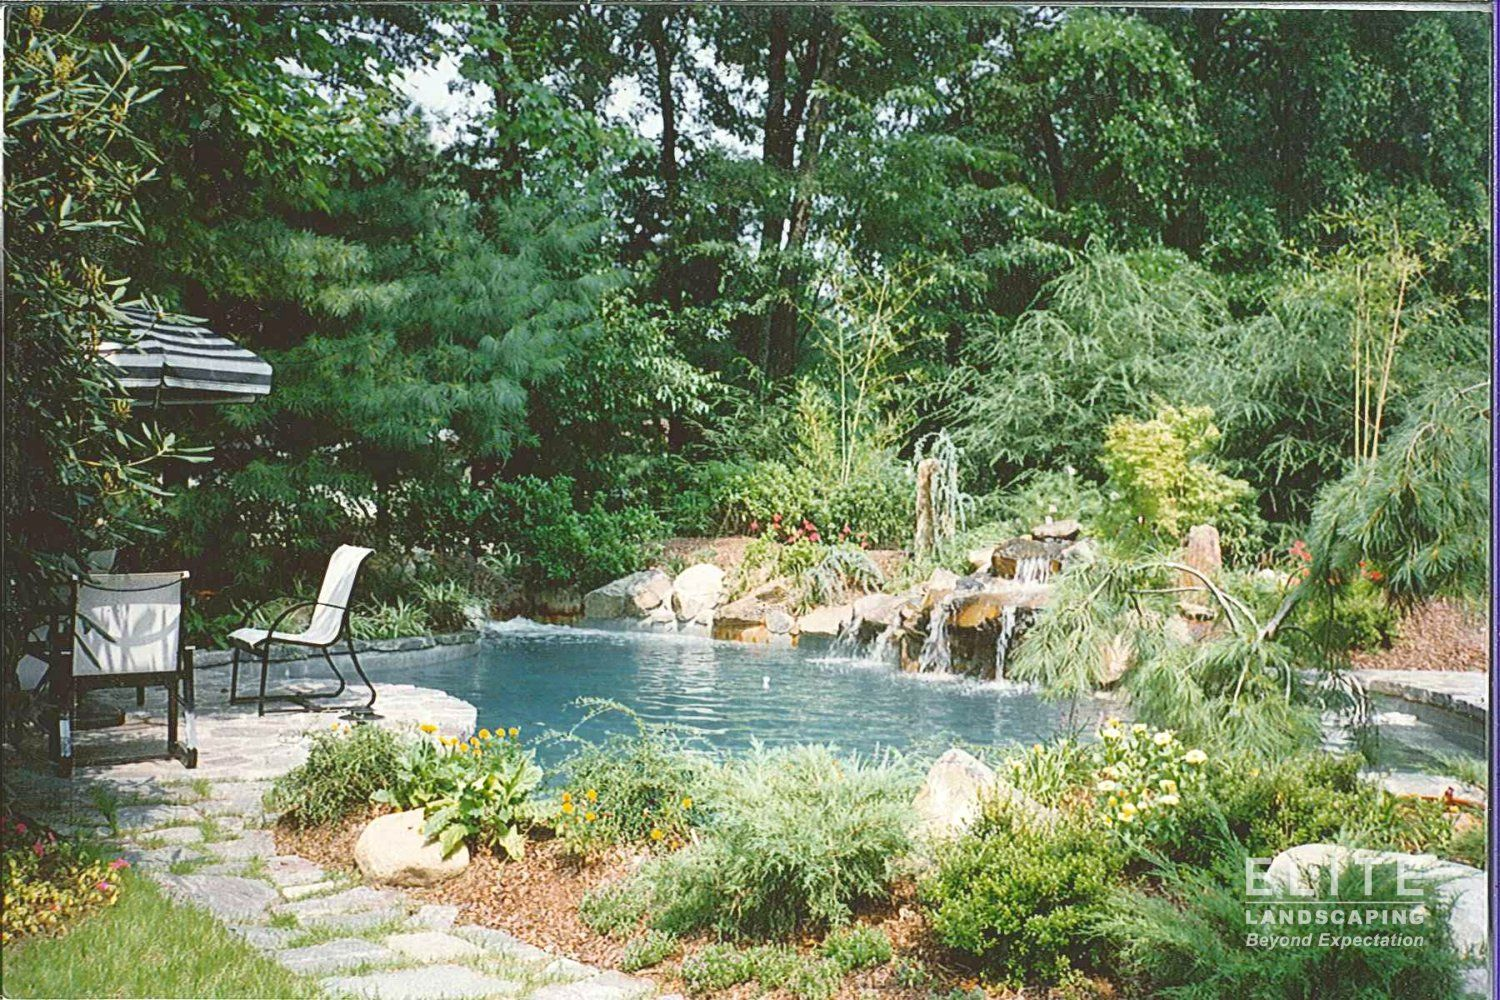 Pin by Jaymie Martin on Water/pools | Elite landscaping ... on Elite Landscape And Outdoor Living id=99827